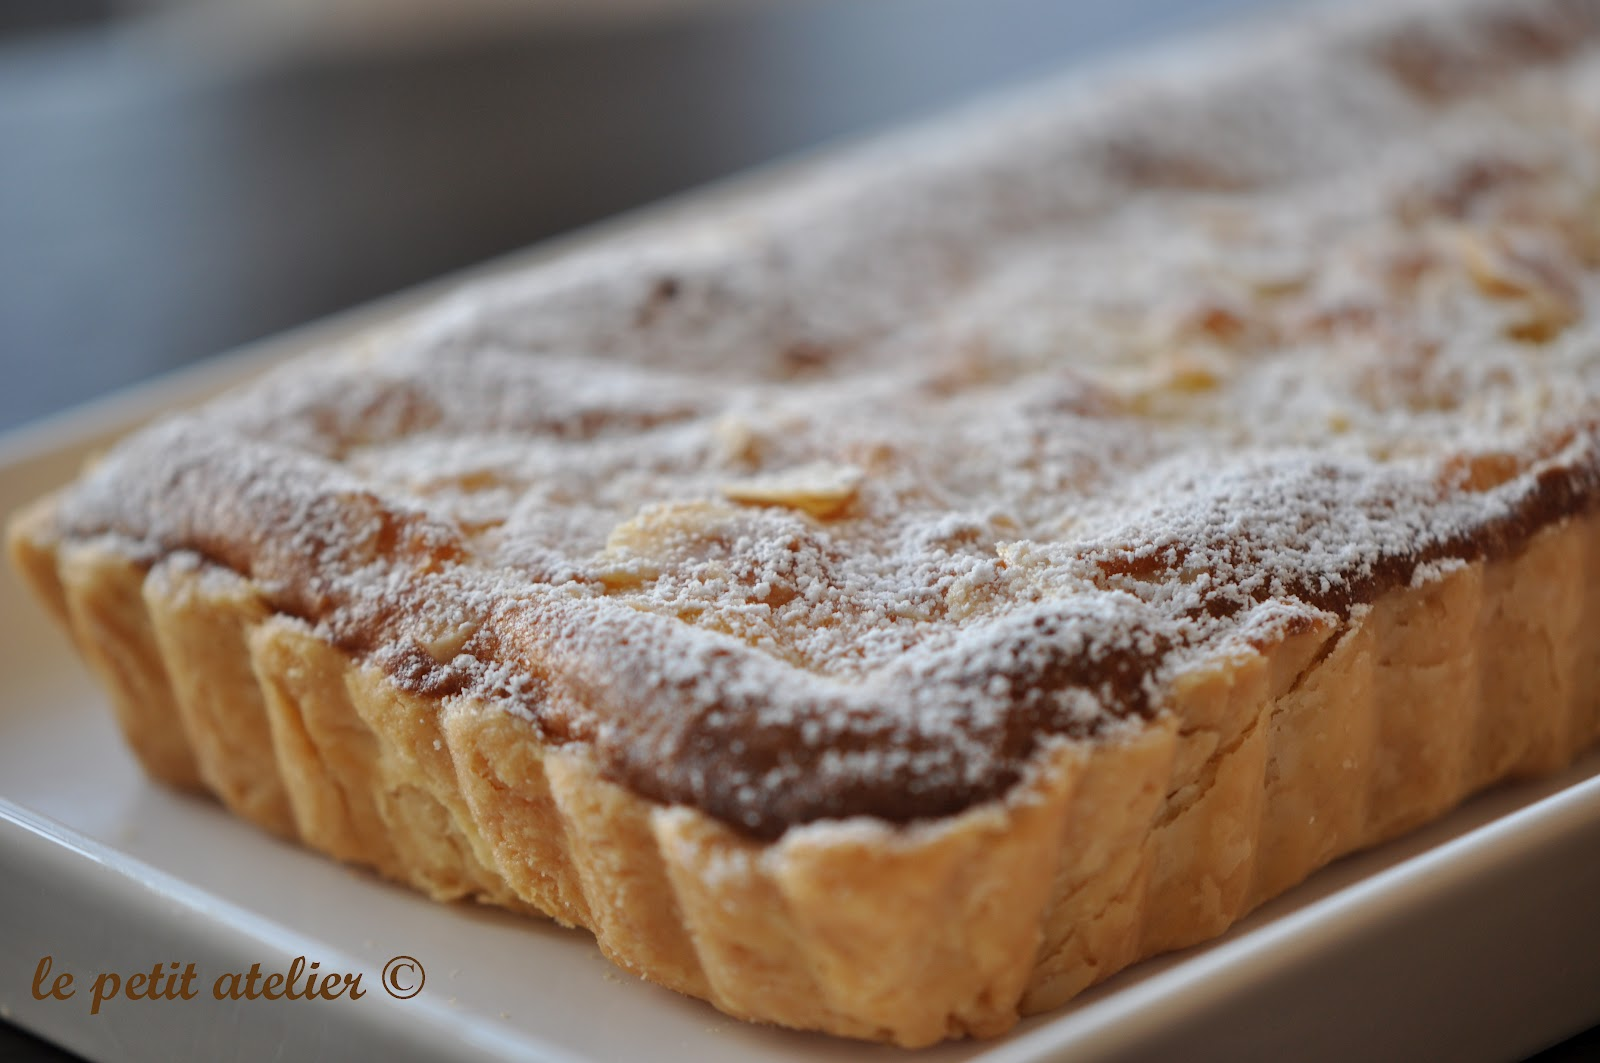 This tart is quite light and simple in taste, and it would go ...